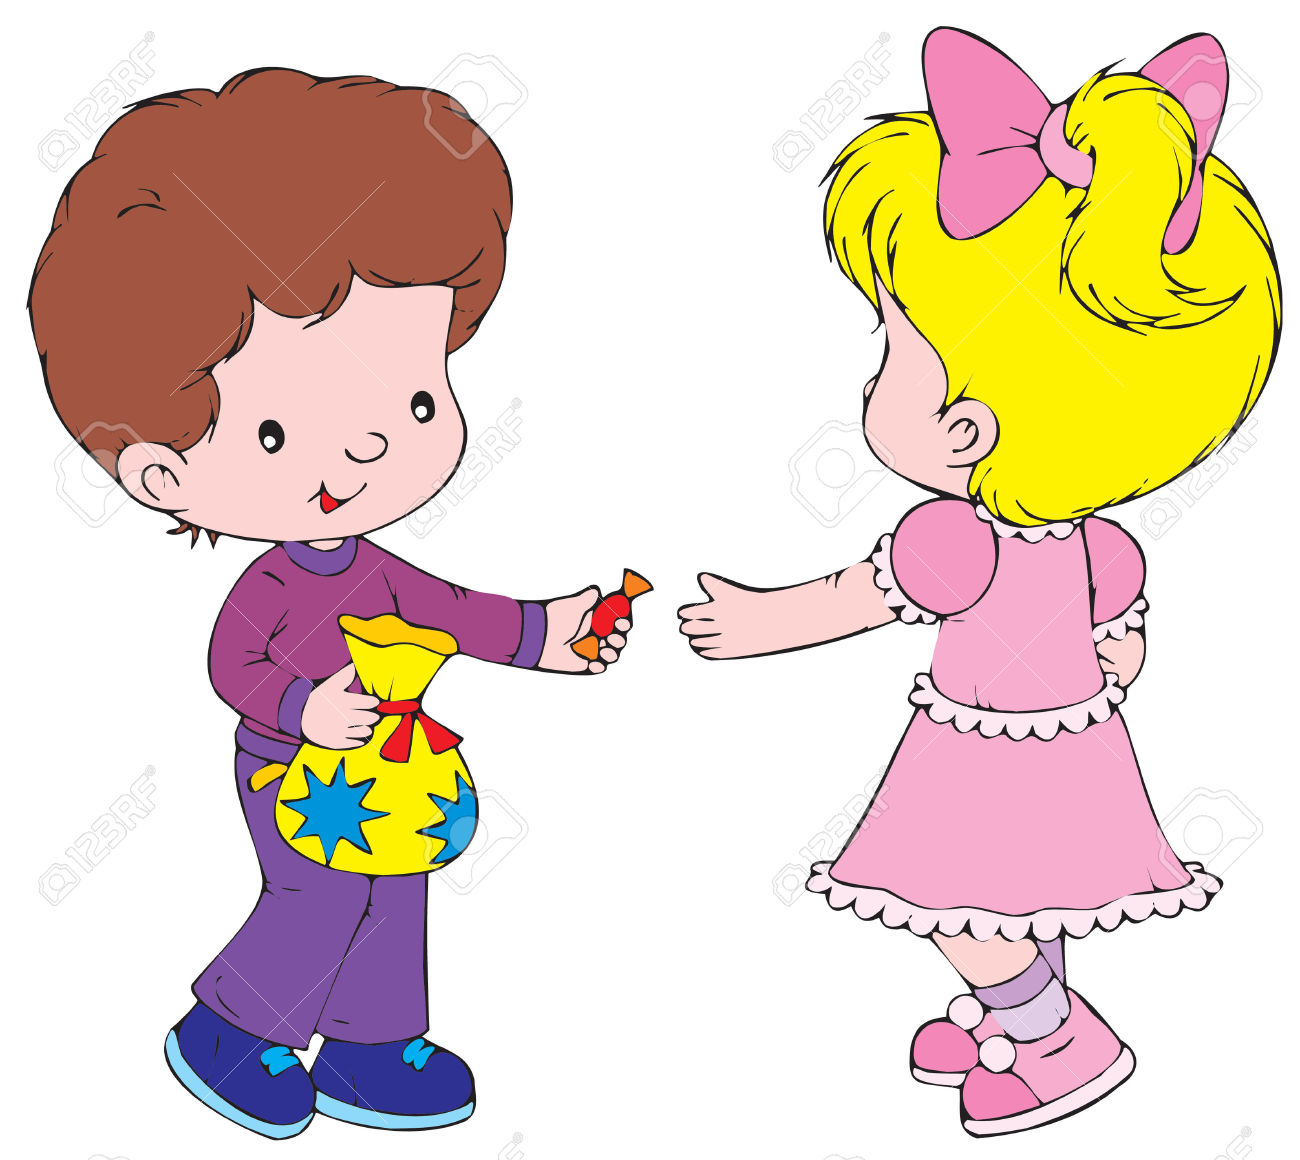 sharing toys clipart - Clipground